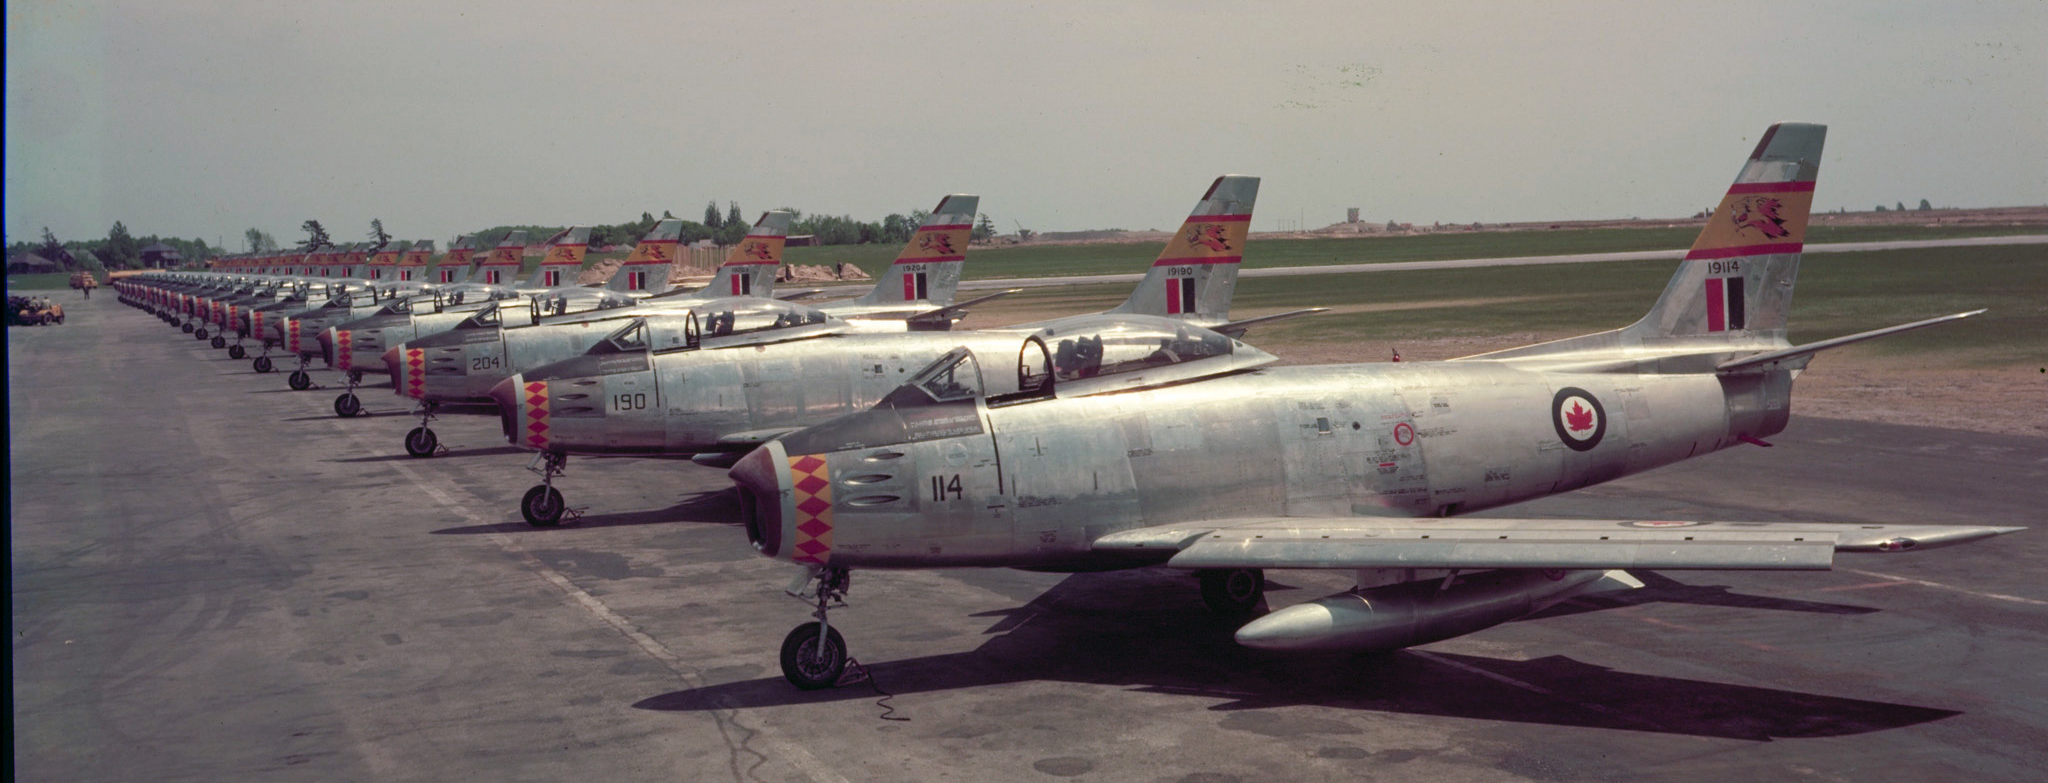 F-86 Sabres from 439 Squadron are lined up on the tarmac at Uplands in Ottawa. PHOTO: DND Archives, PC-81